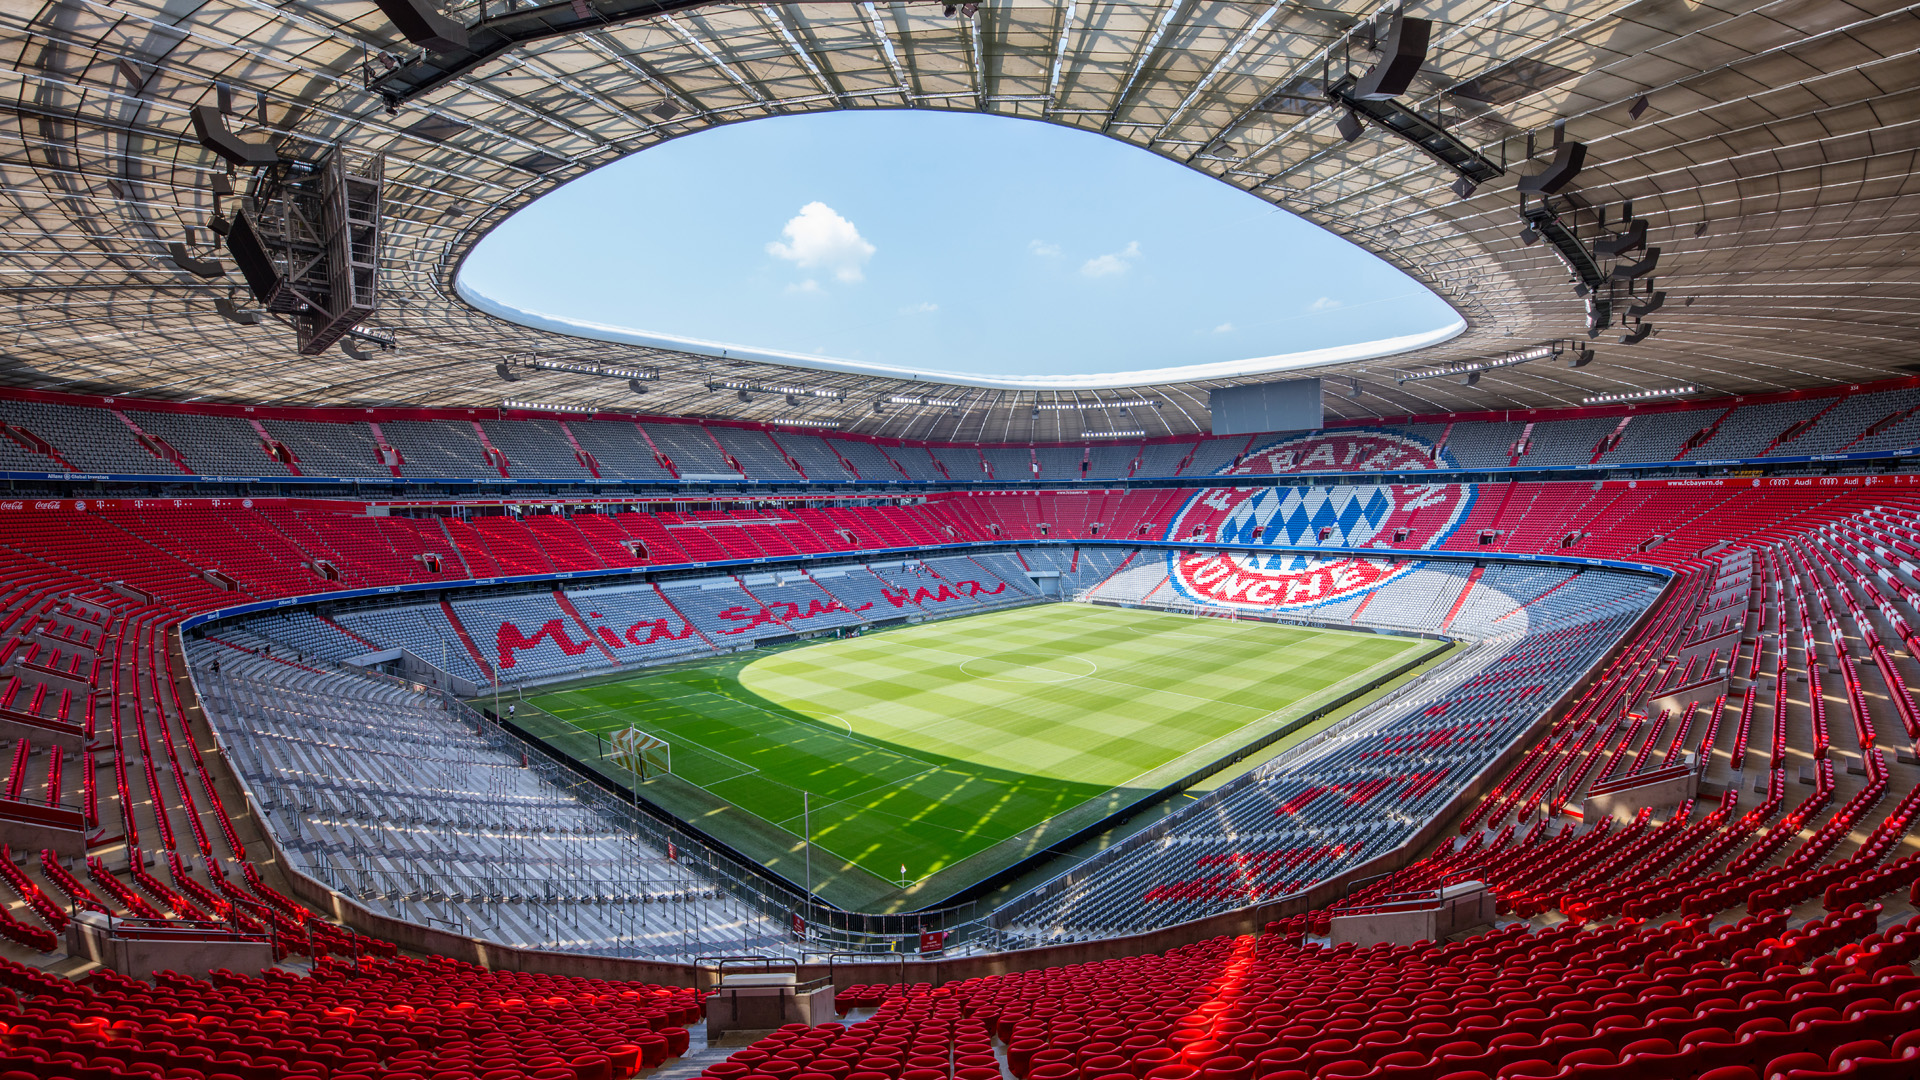 Allianz Arena. Virtual background to use on Zoom, Microsoft Teams, Skype, Google Meet, WebEx or any other compatible app.